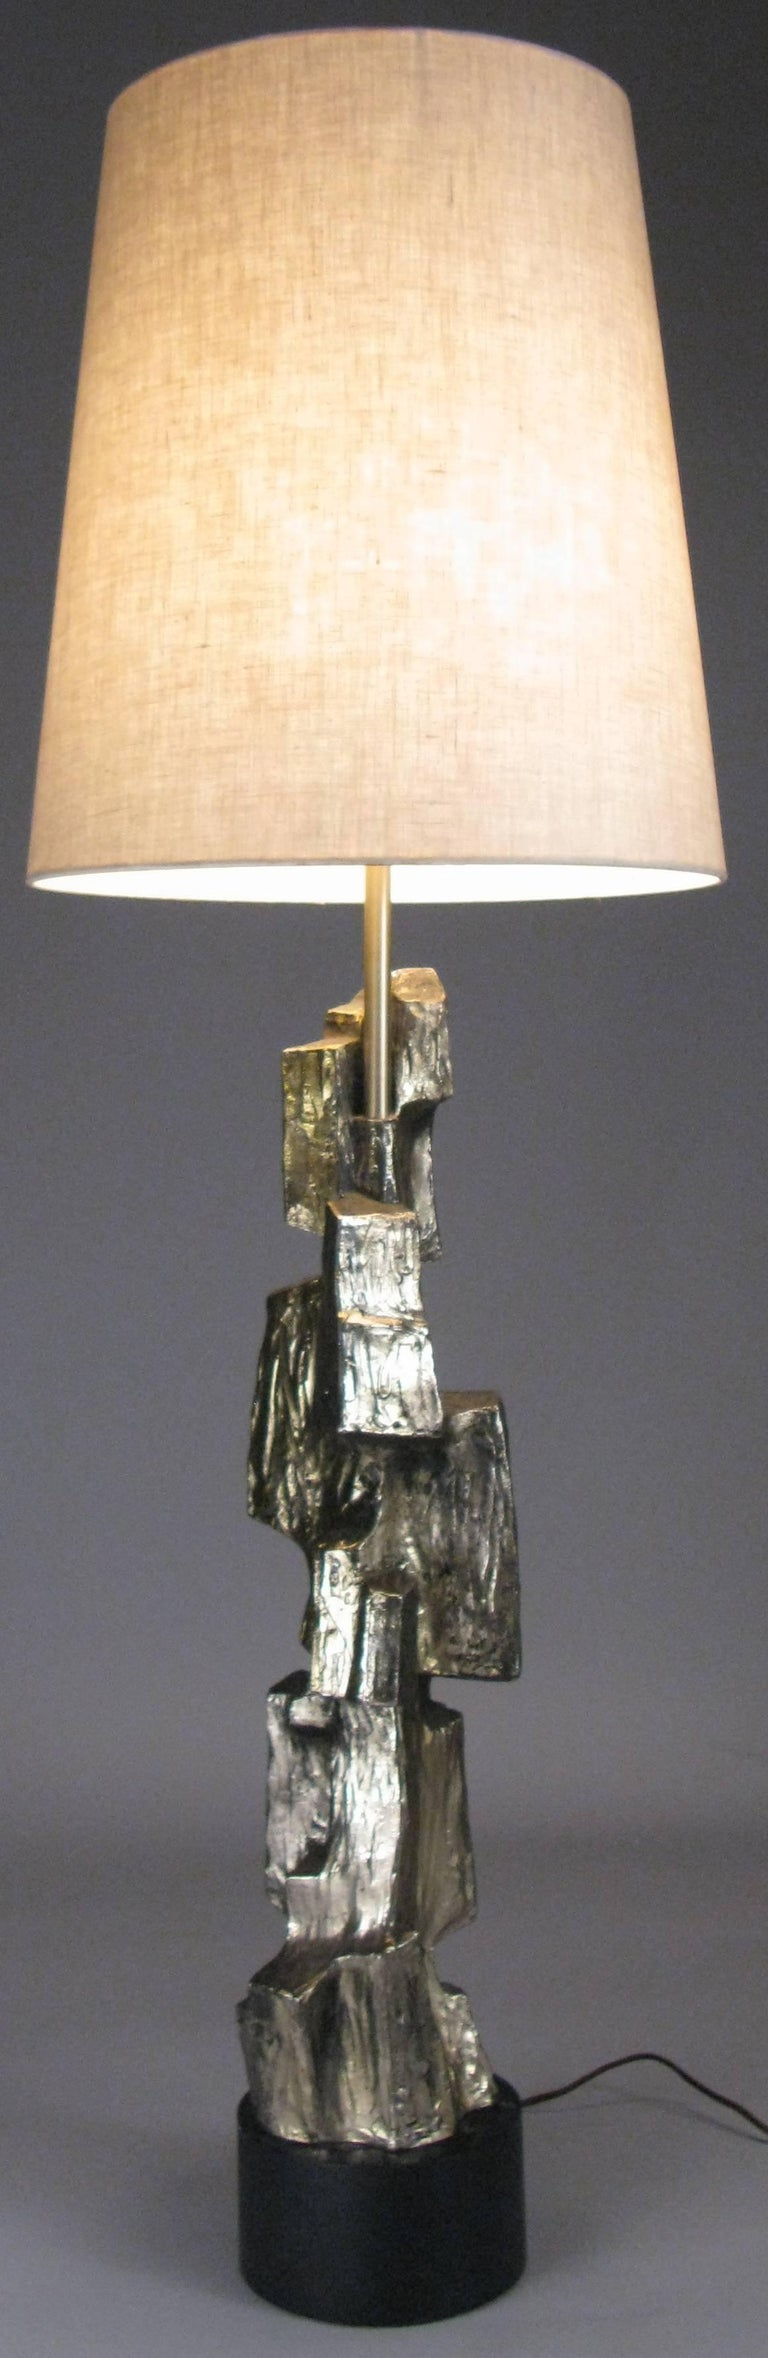 Sculptural 1970s bronze lamp for sale at 1stdibs for Iconic design lamps